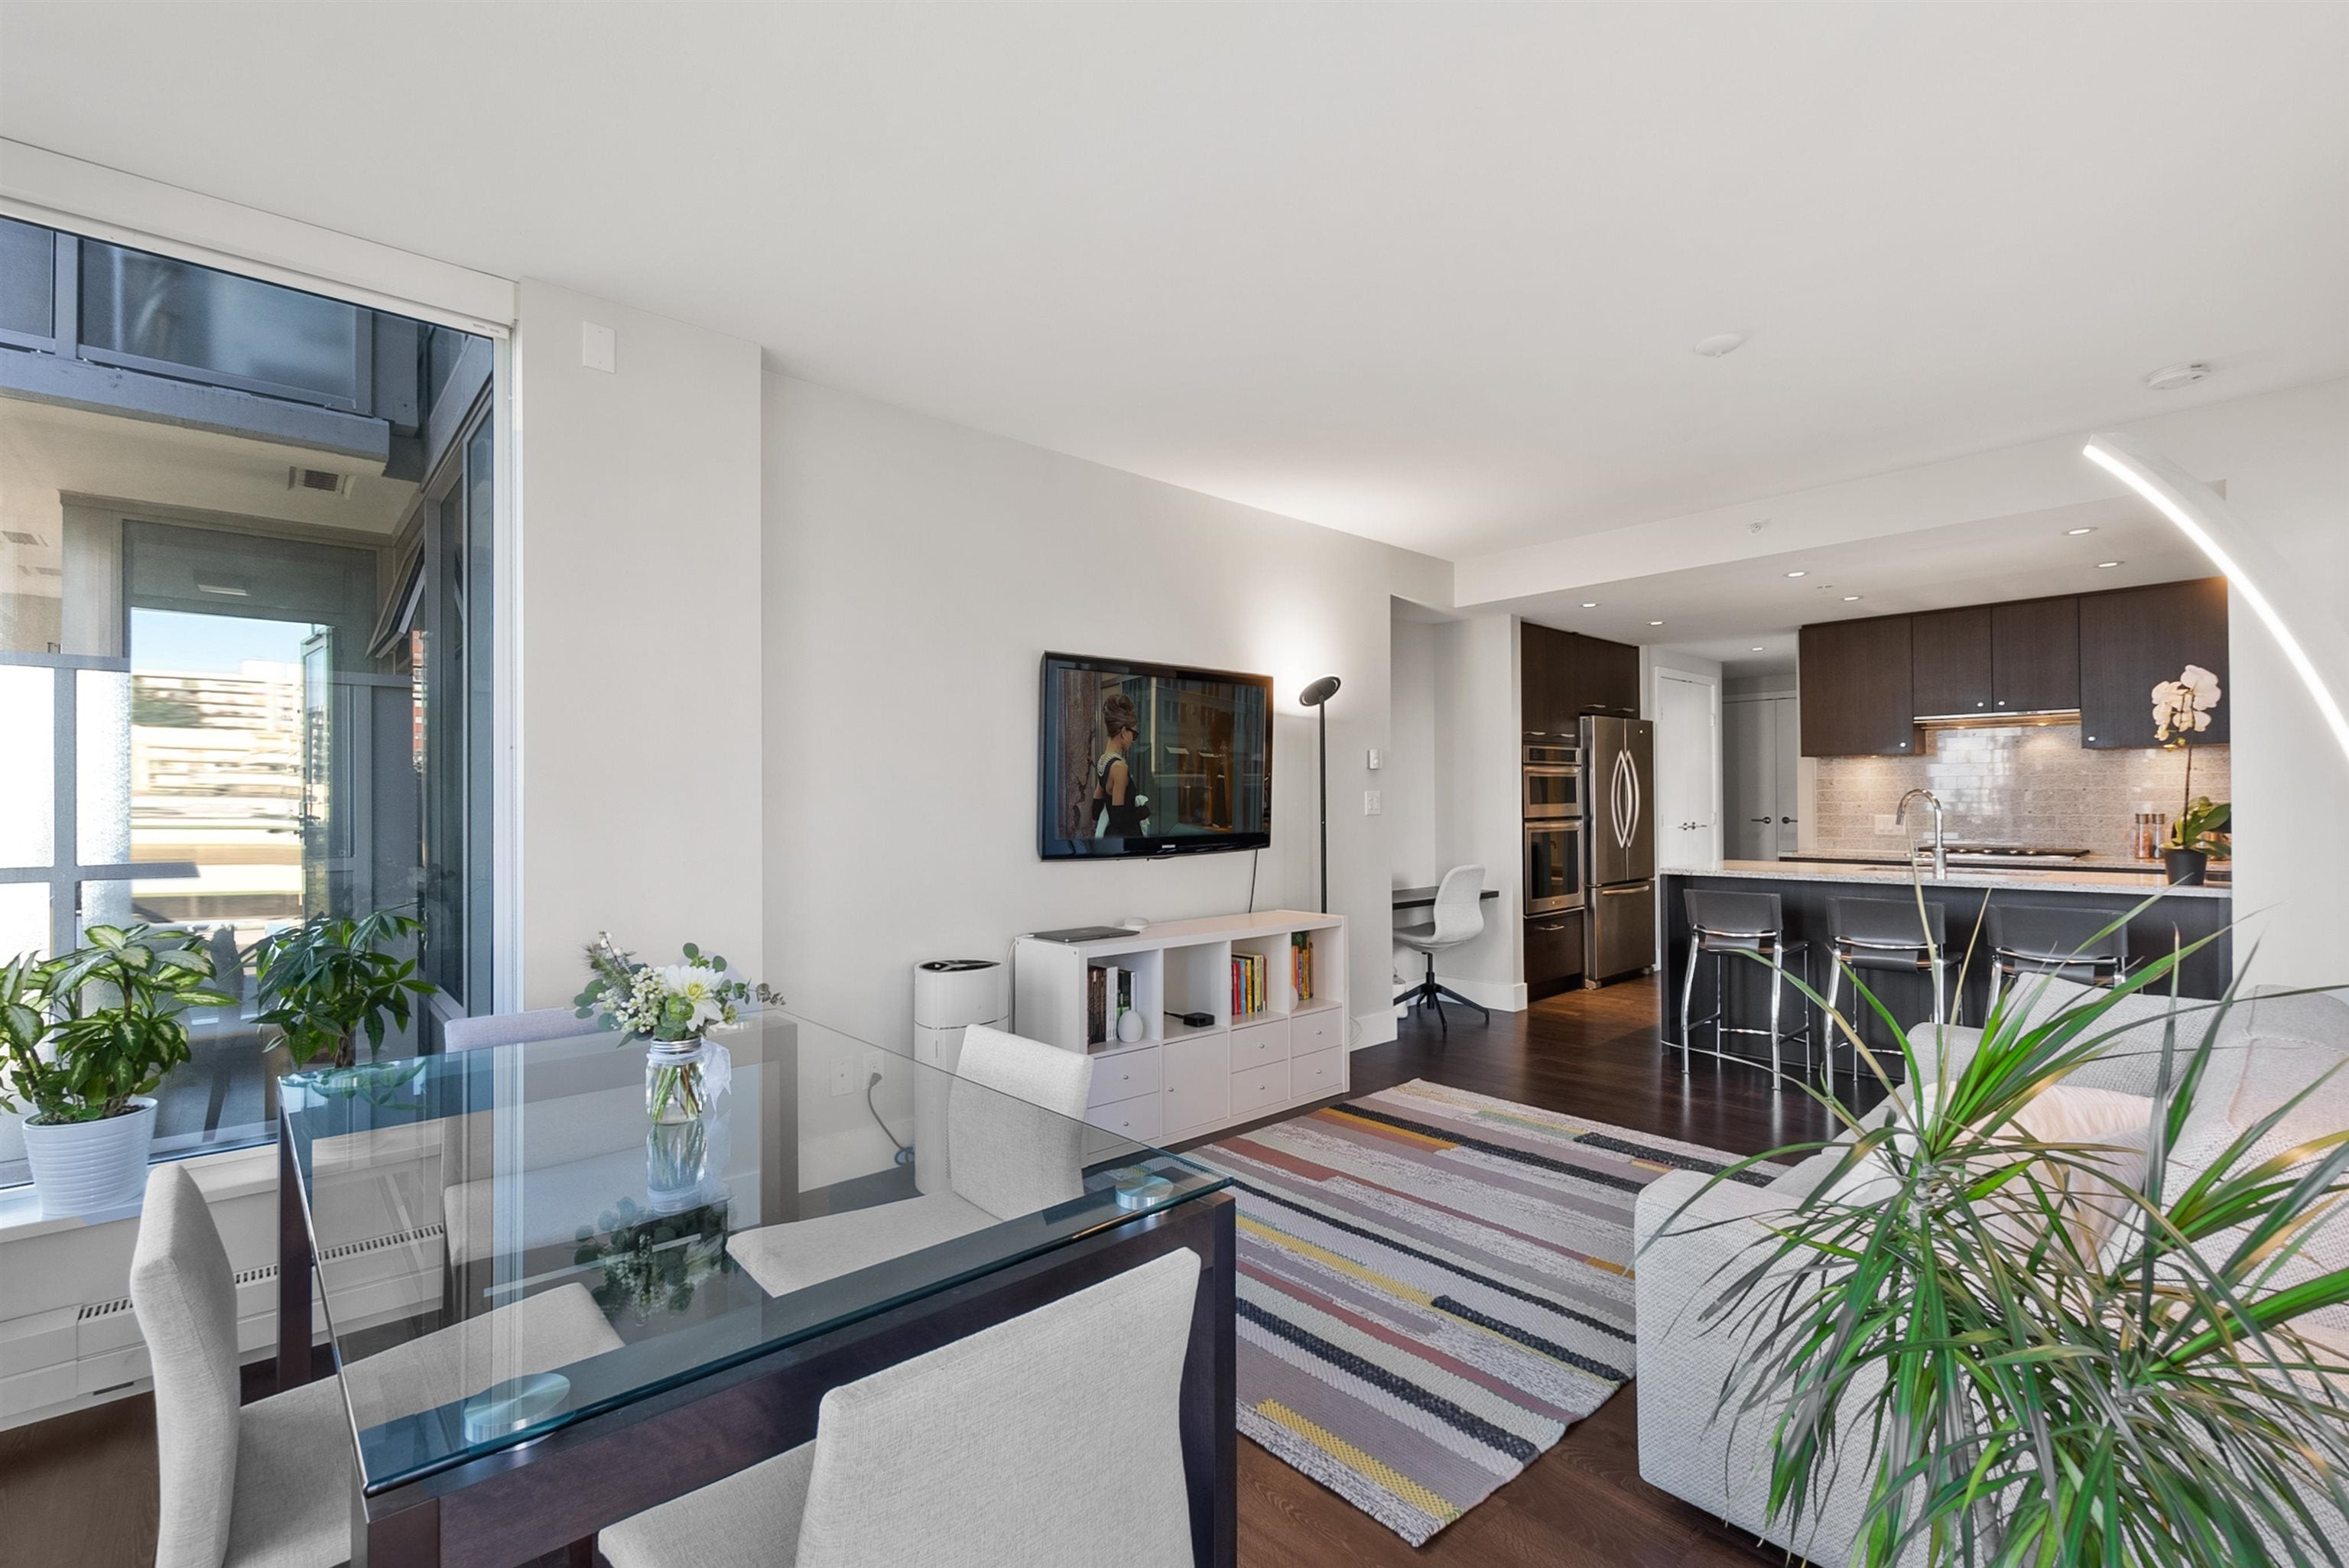 503 150 W 15TH STREET - Central Lonsdale Apartment/Condo for sale, 2 Bedrooms (R2624732) - #2